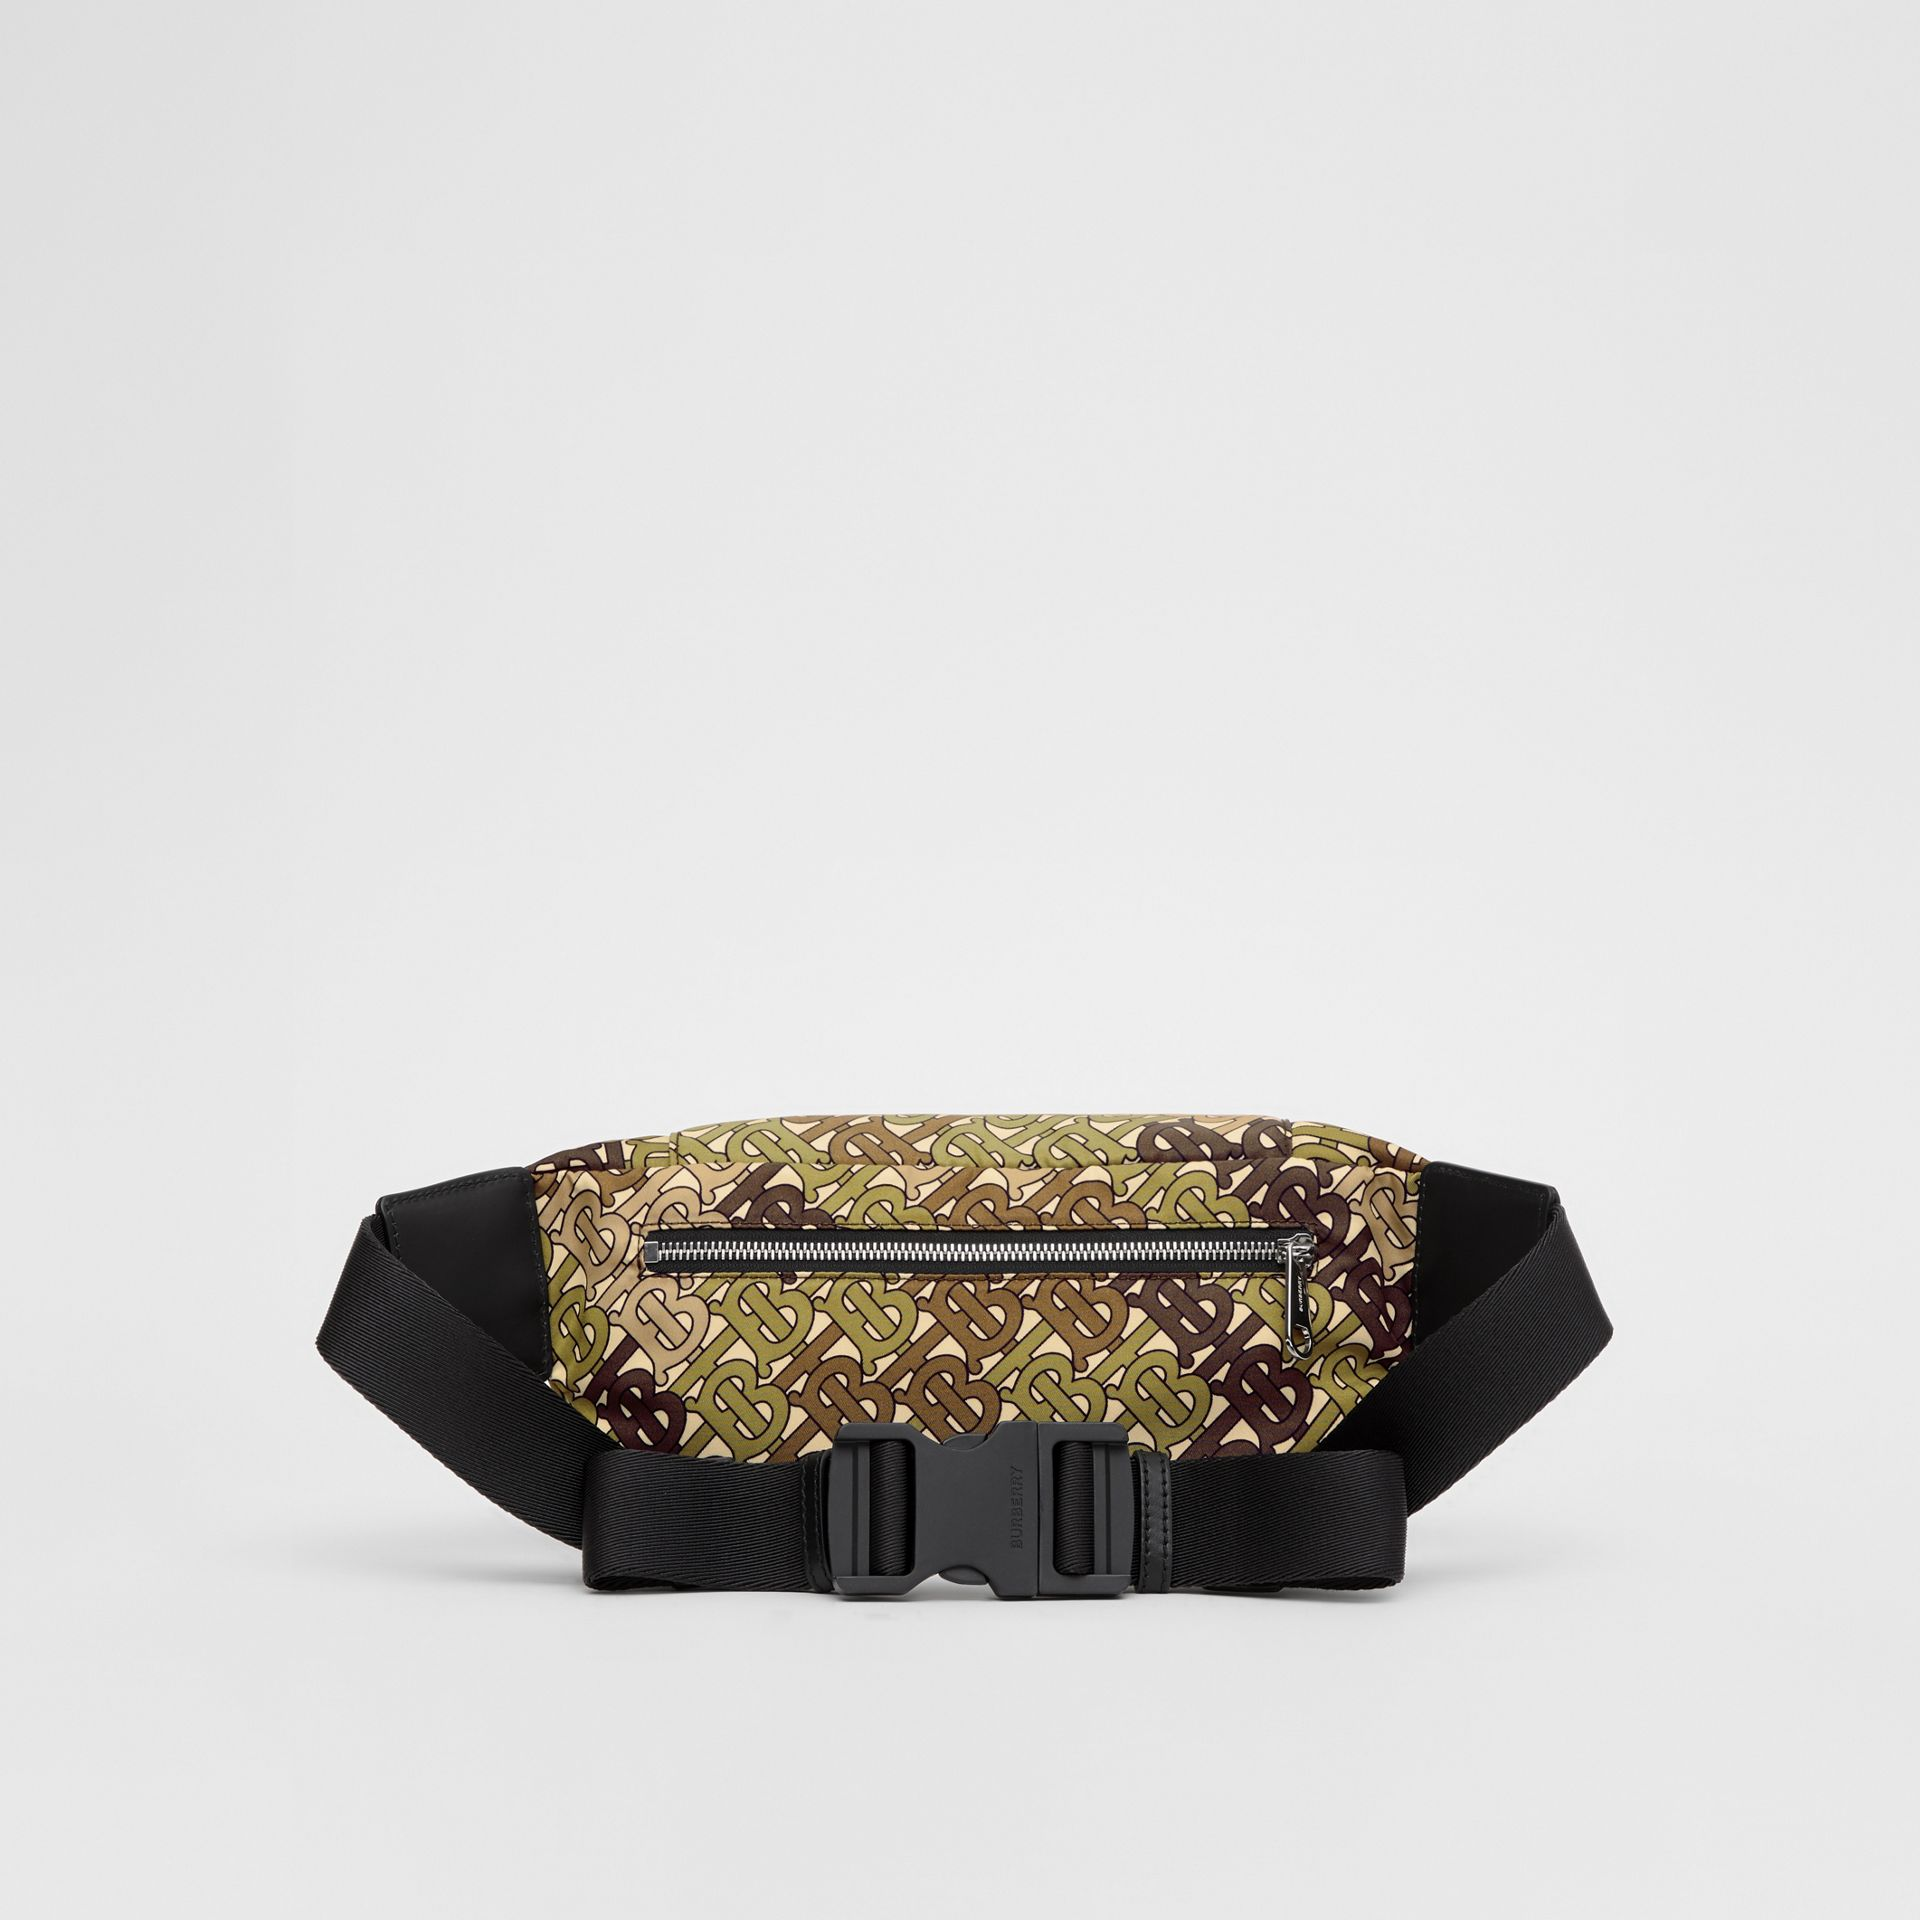 Medium Monogram Print Bum Bag in Khaki Green | Burberry Canada - gallery image 9